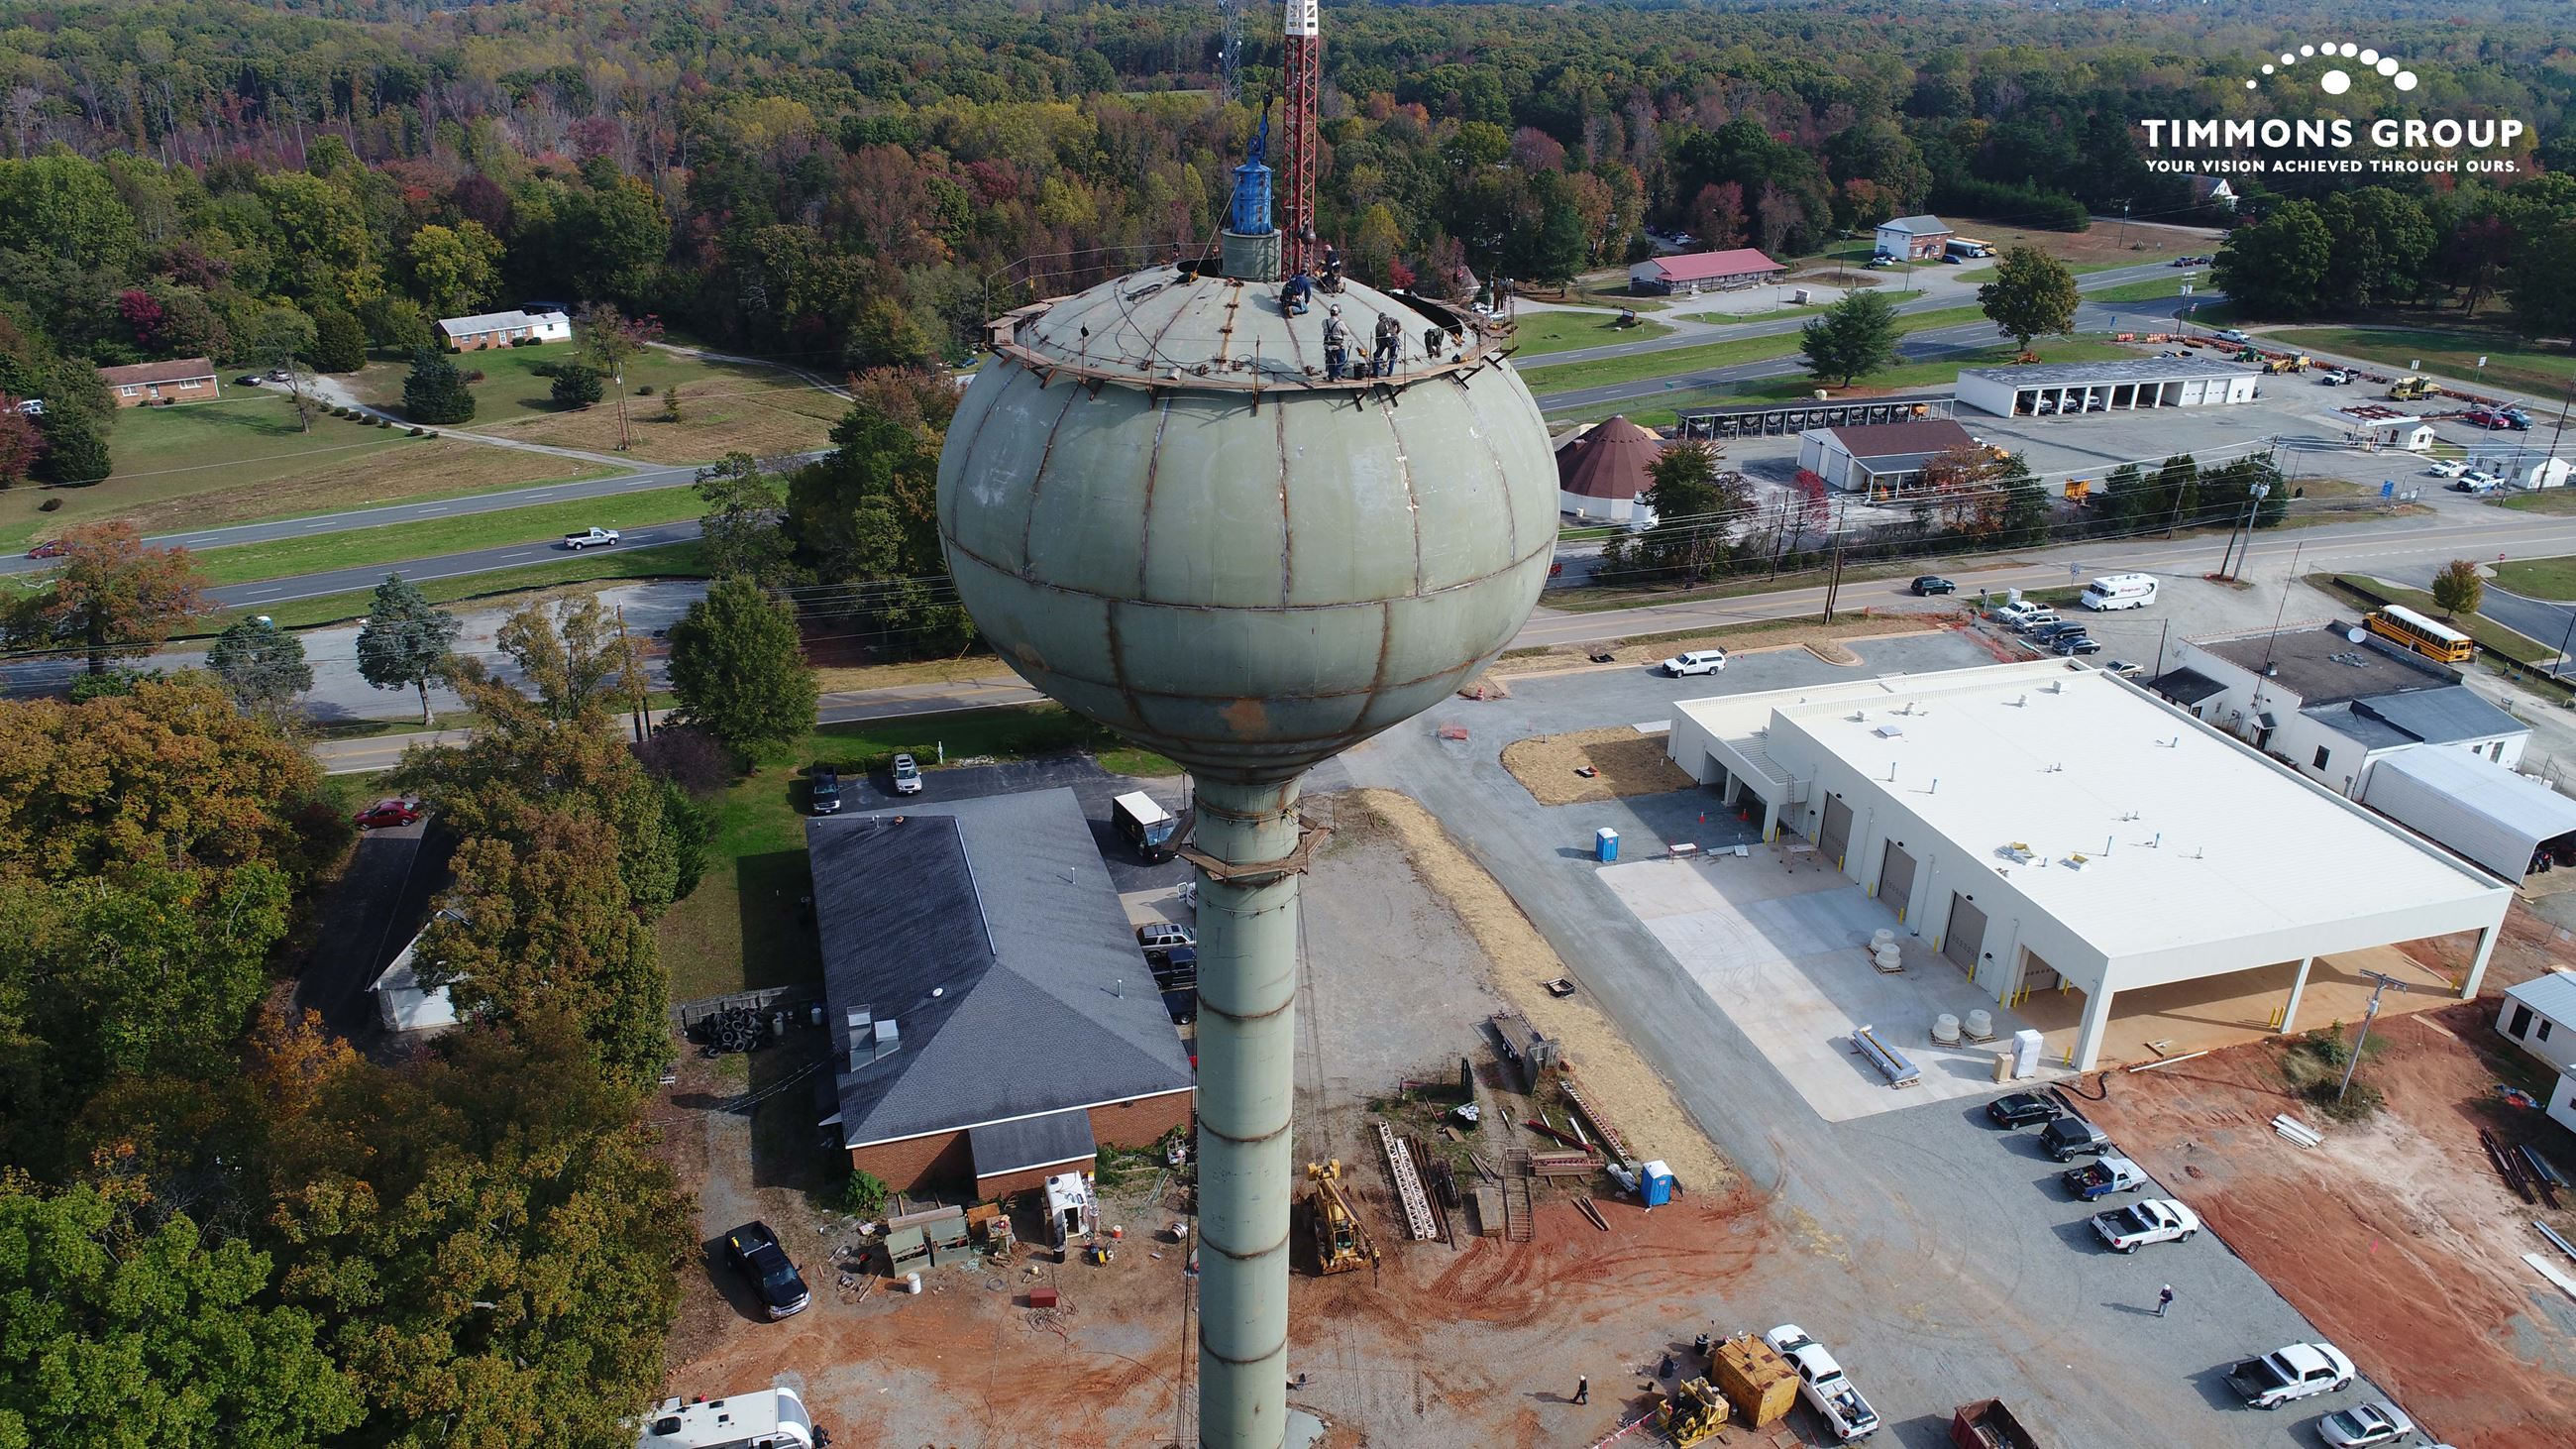 water tower picture #1 11.2.17